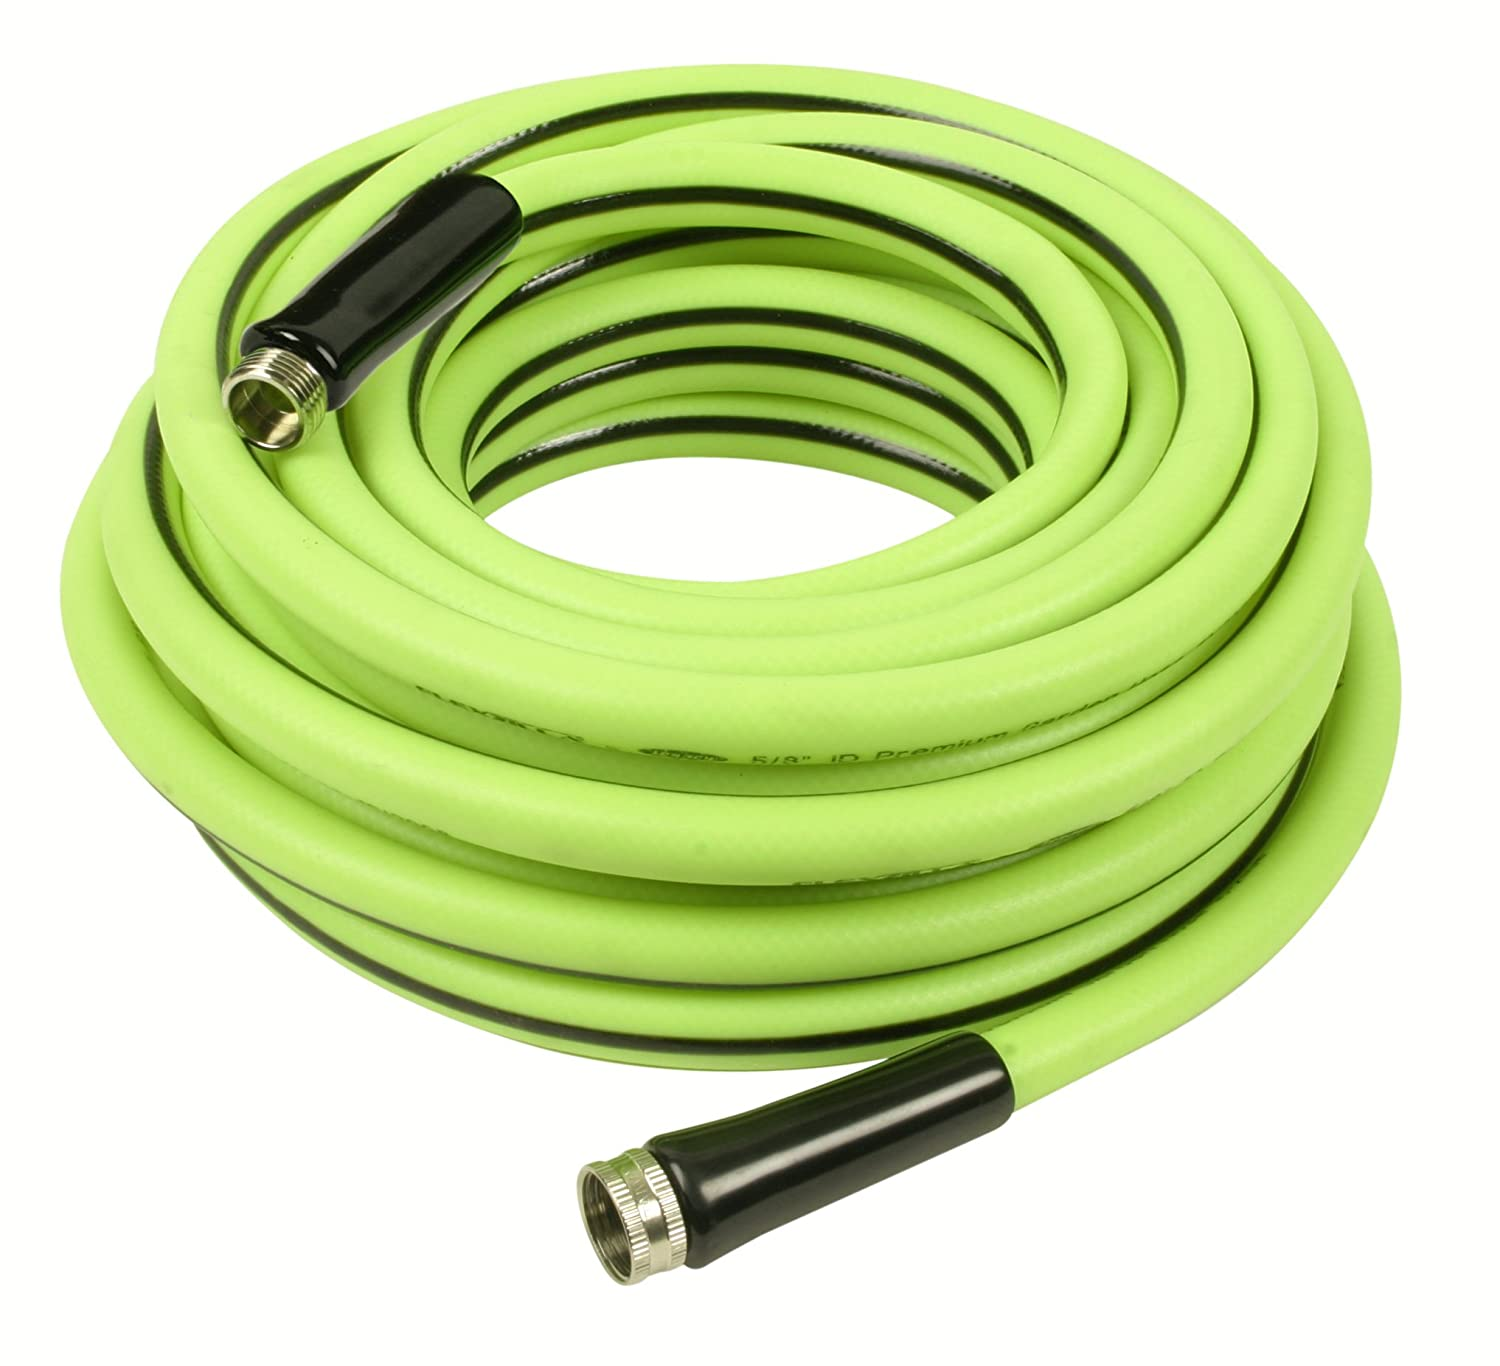 Amazon.com: Legacy HFZW5850YW34 Flexzilla 5/8 X 50 Zilla Green Water Hose  With 3/4 GHT Ends: Home Improvement